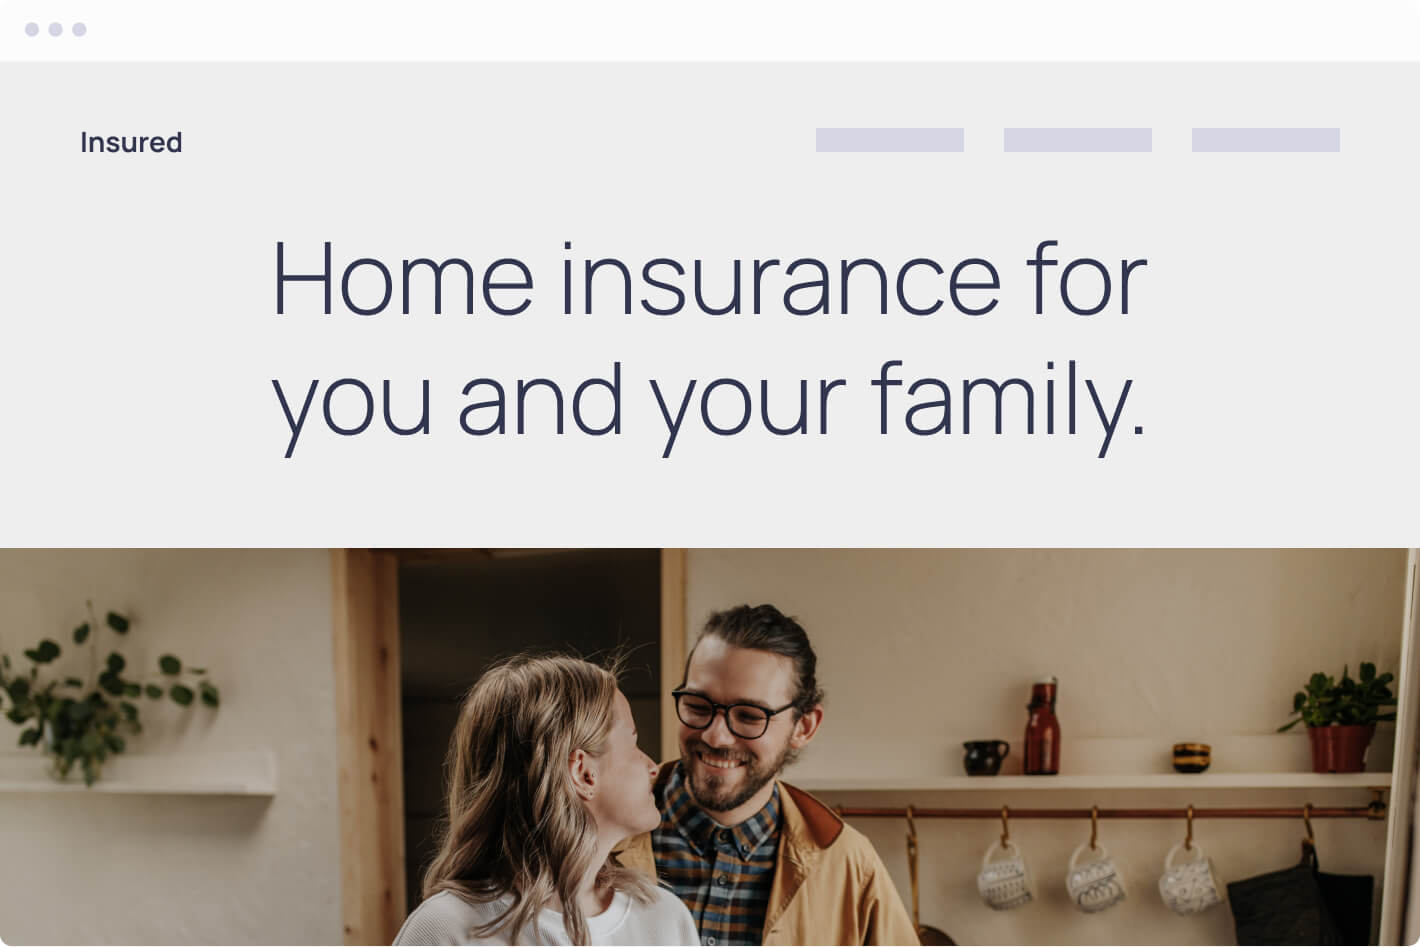 Browser mockup of an insurance company website